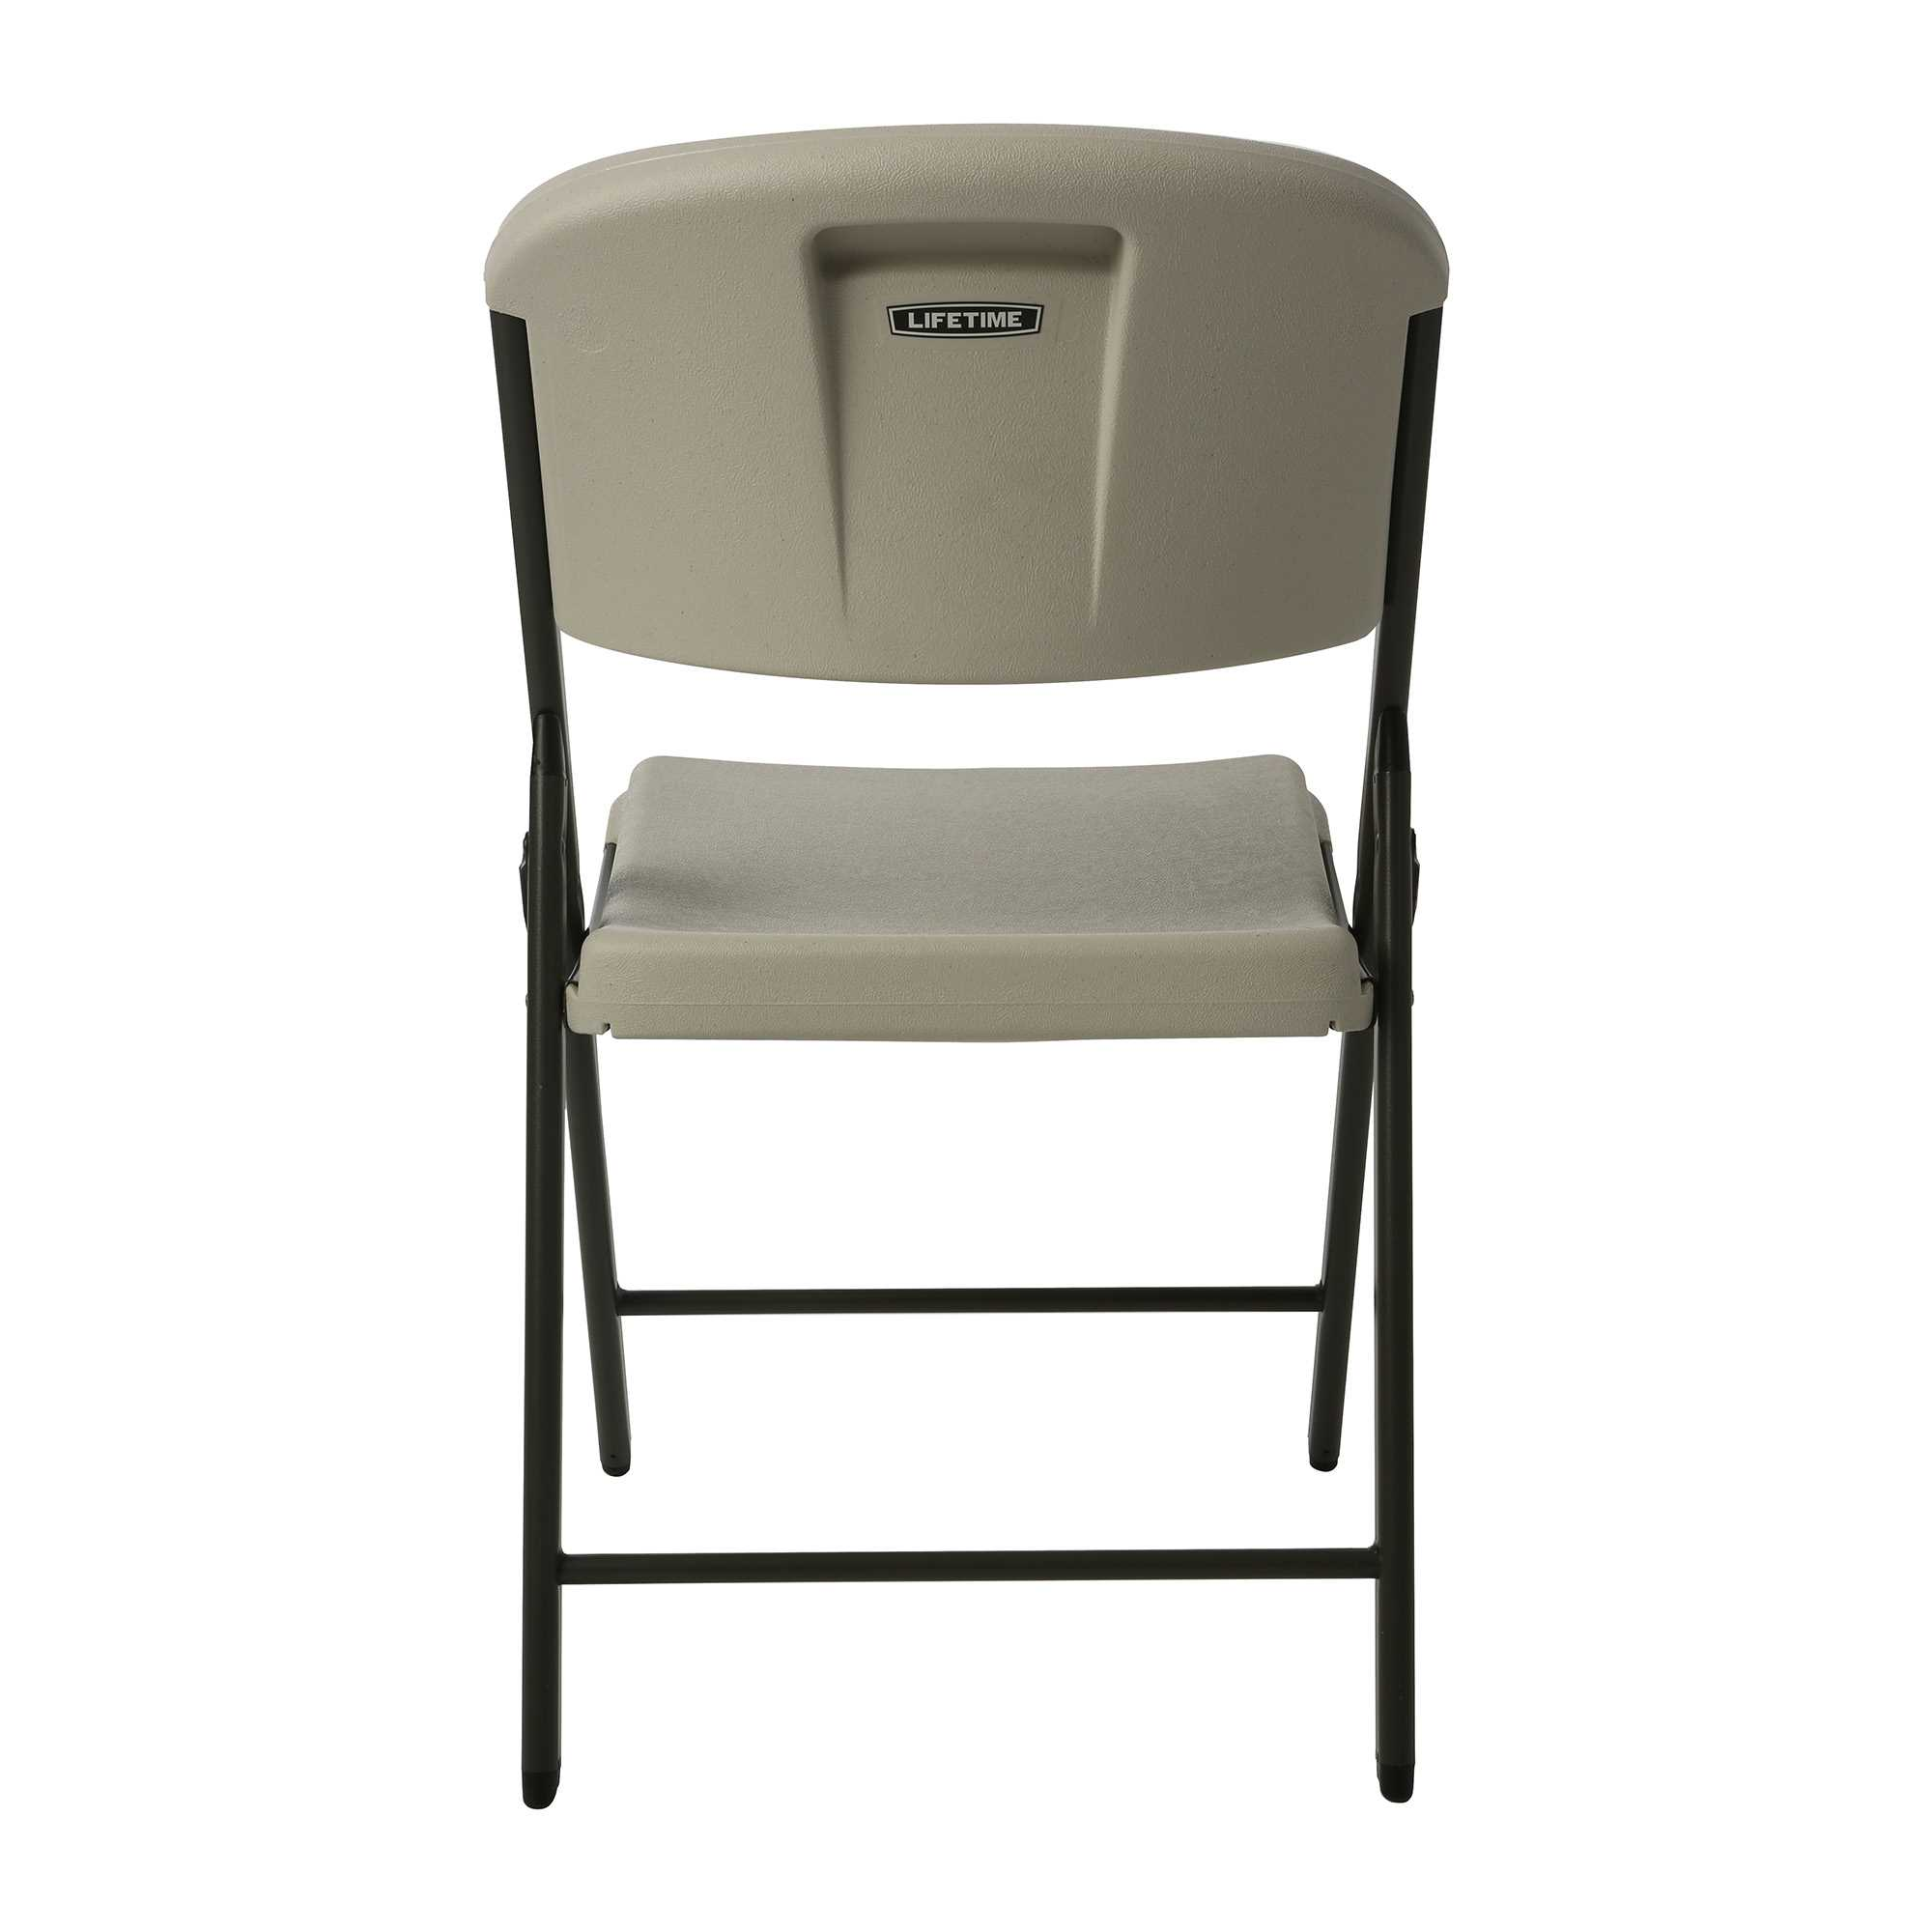 Lifetime 2803 Almond Chairs 32 Pack On Sale With Fast